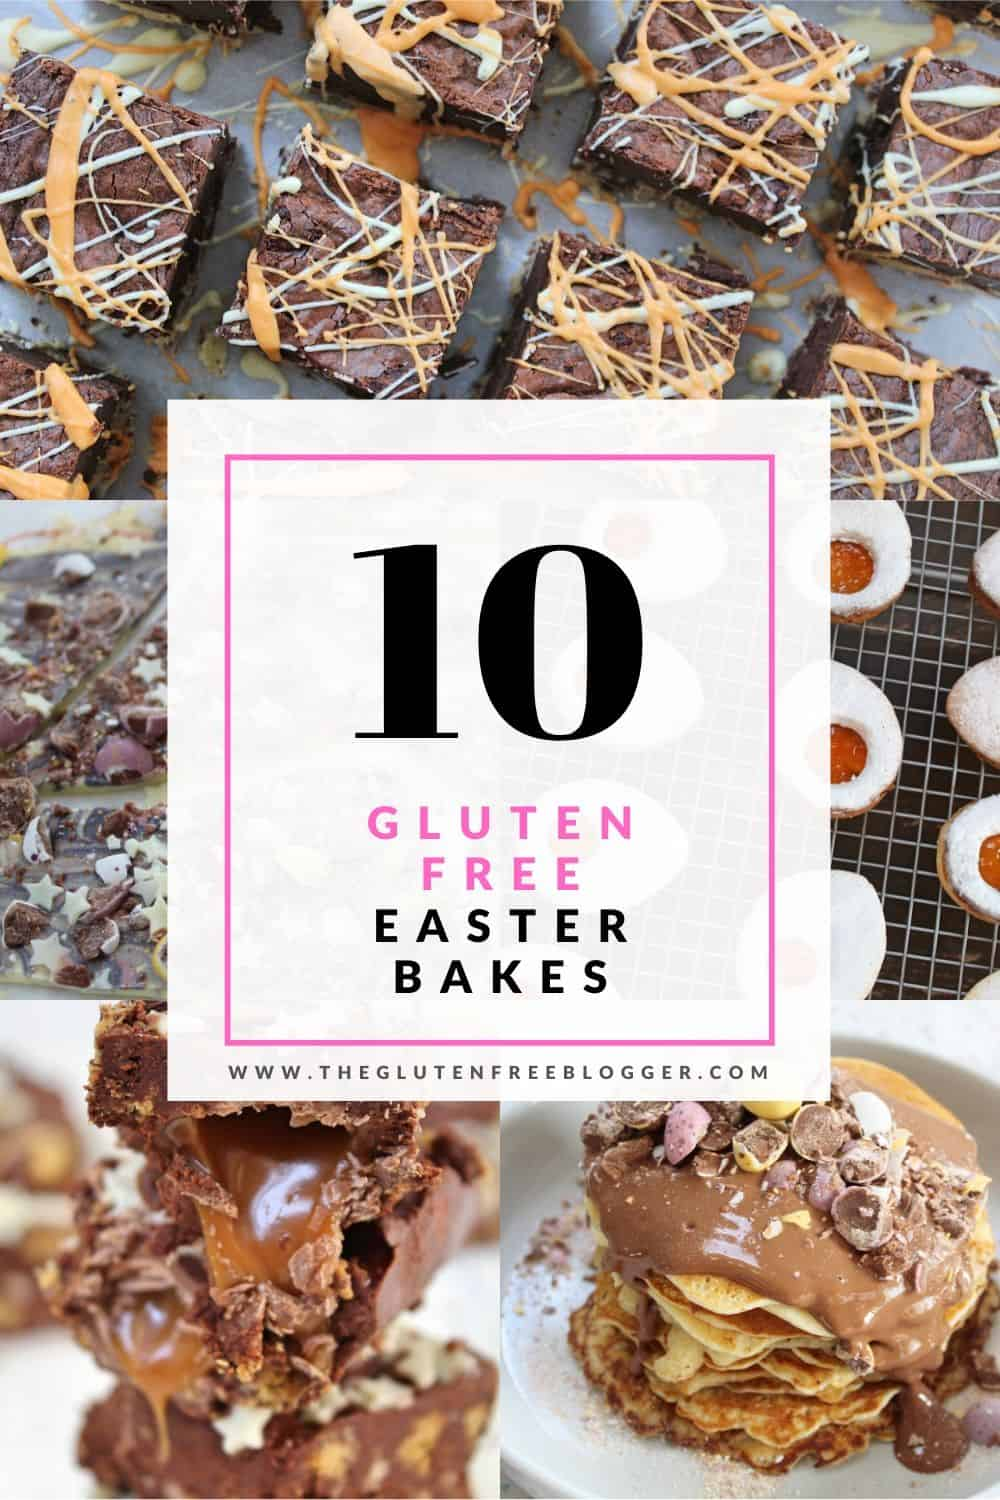 gluten-free-easter-recipes-bakes-coeliac-celiac